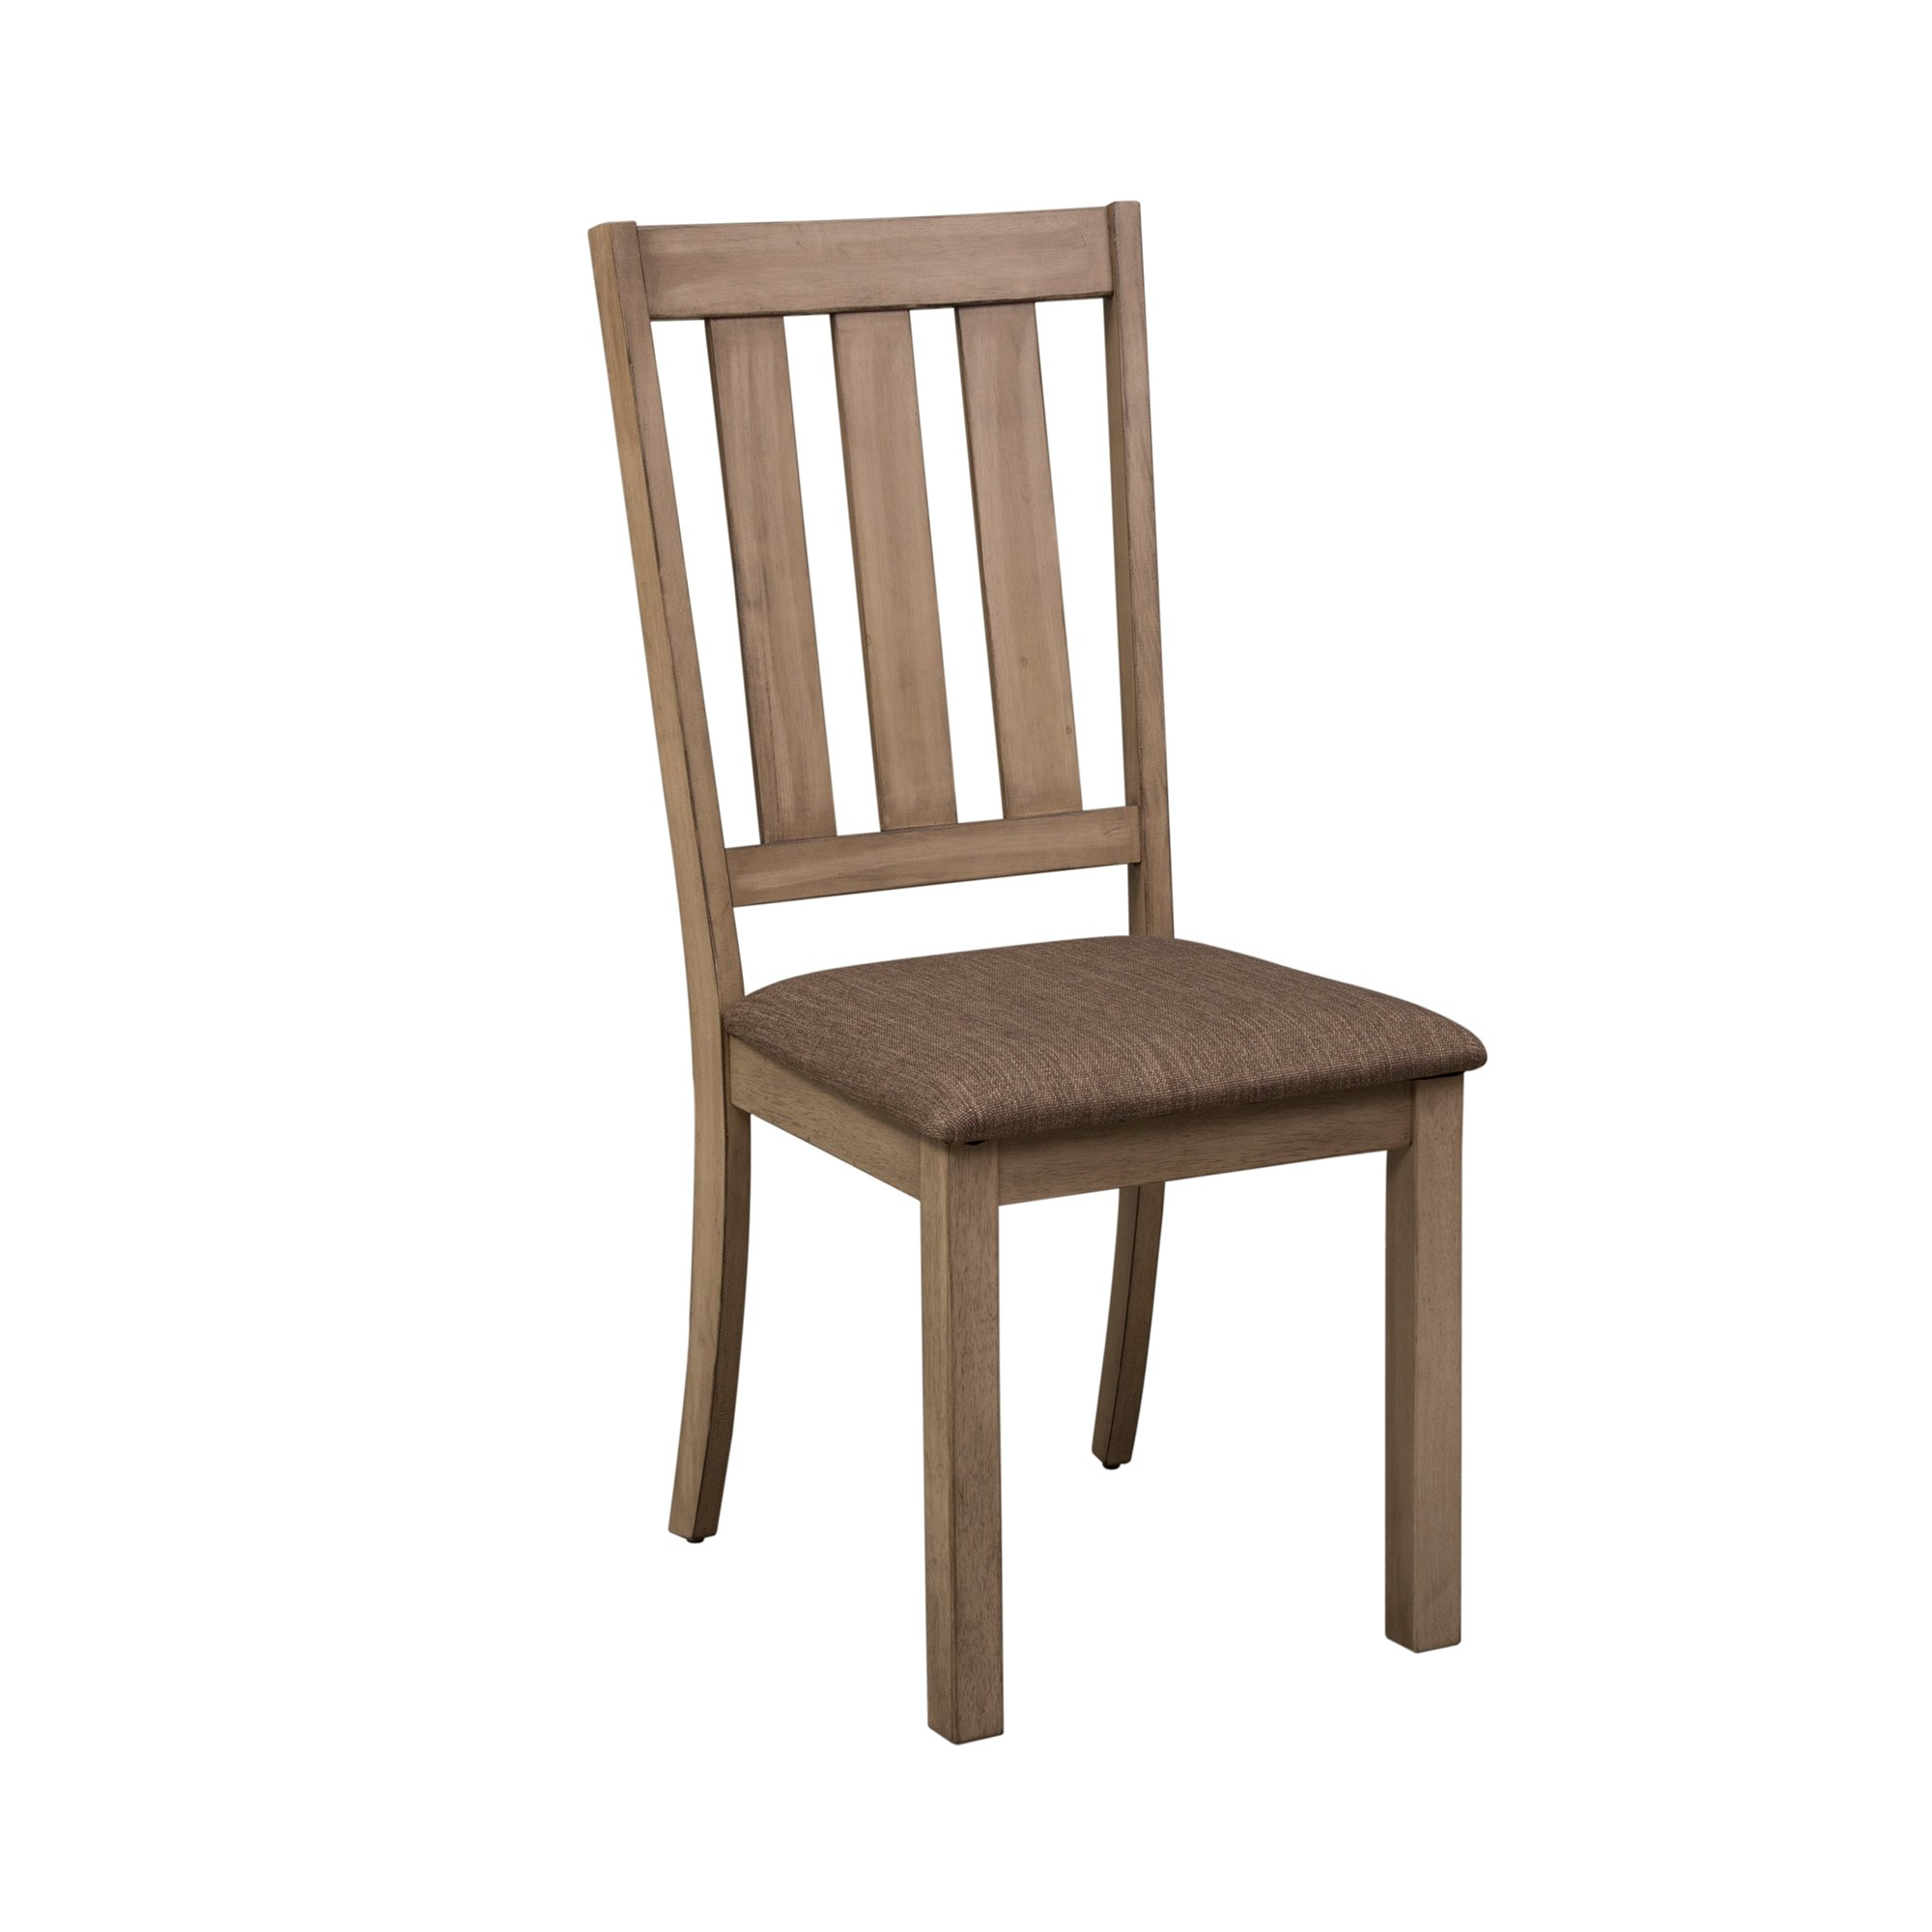 Sandstone Upholstered Dining Chair   Sun Valley